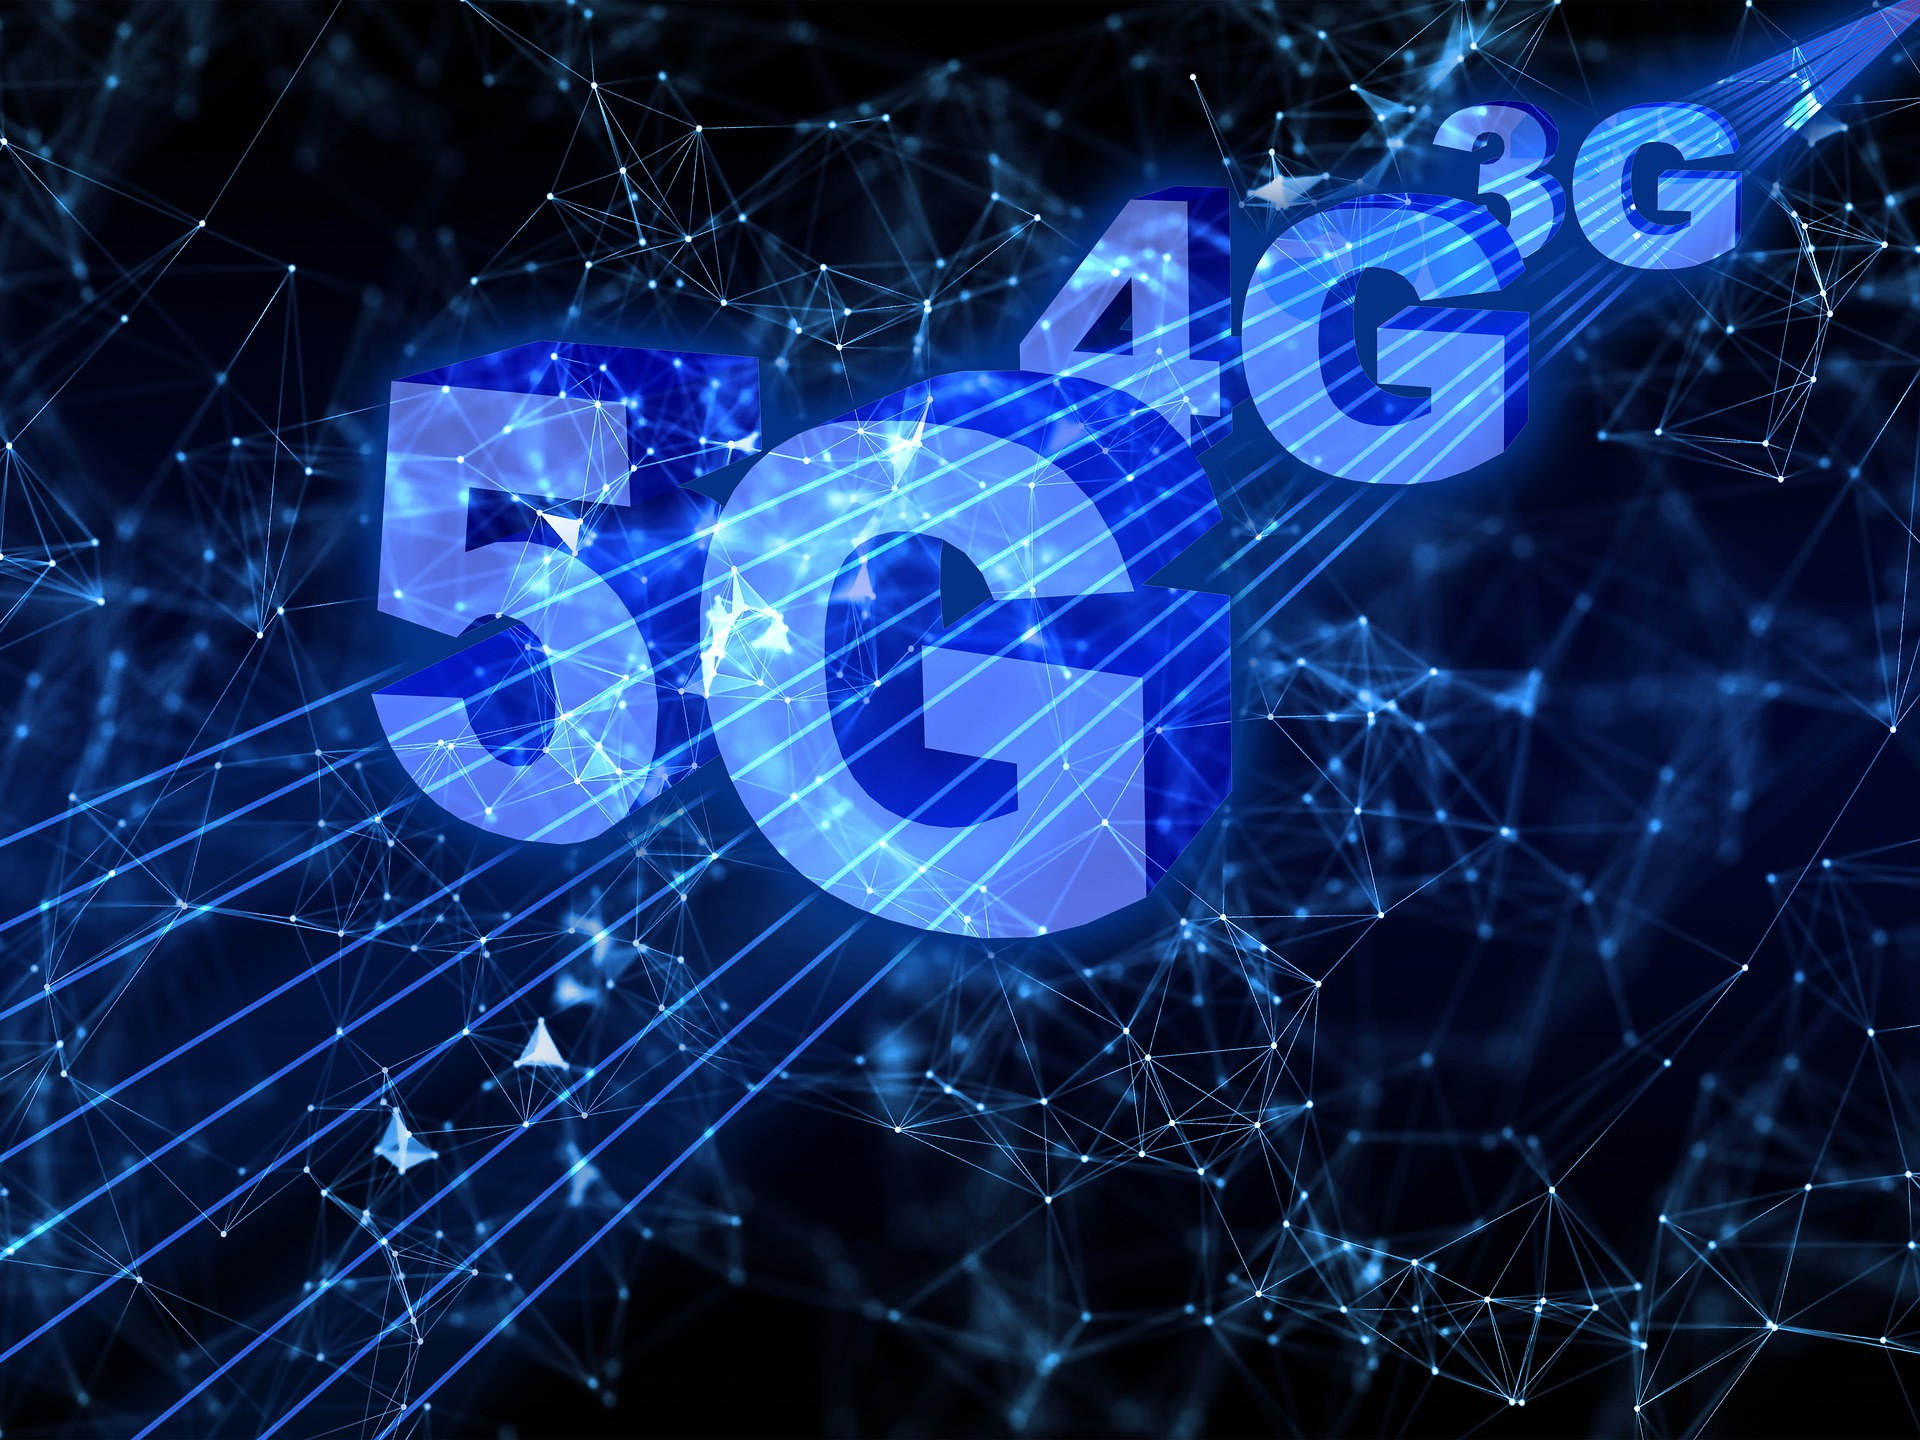 5G: What Will It Look Like for the Average Consumer?